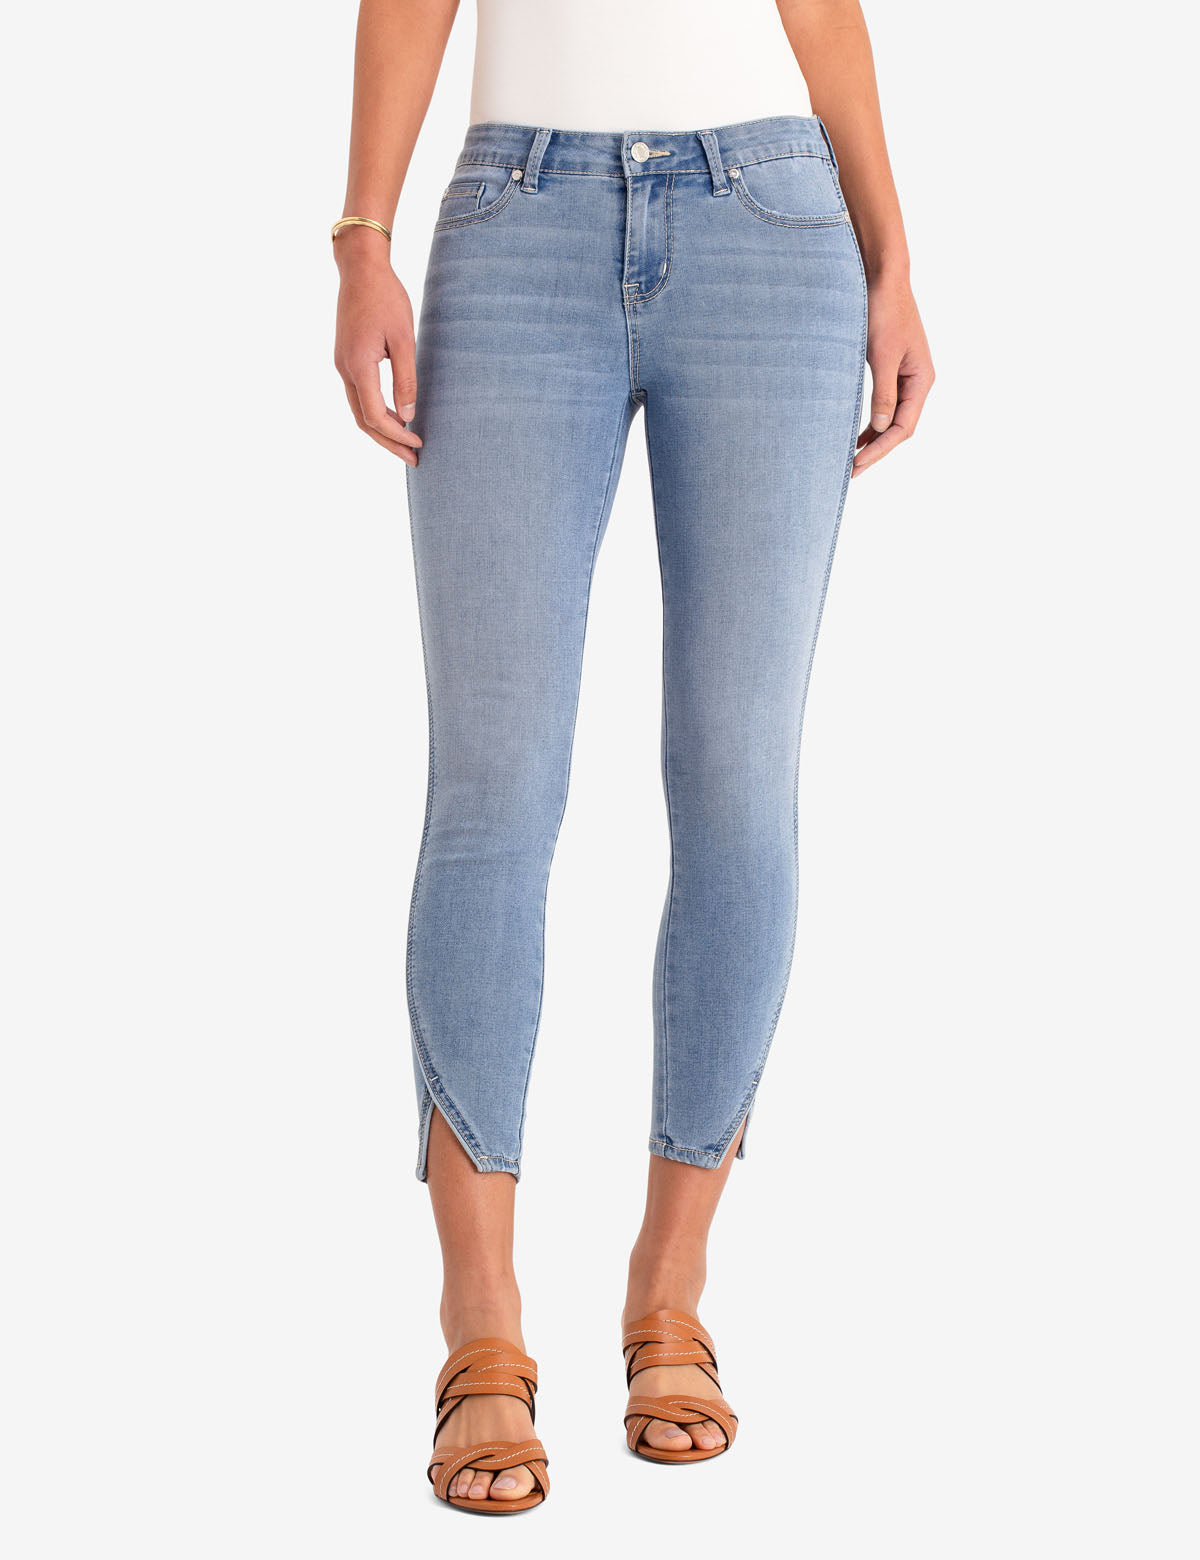 REPREVE® MID RISE CROP JEGGING WITH PIPING - U.S. Polo Assn.